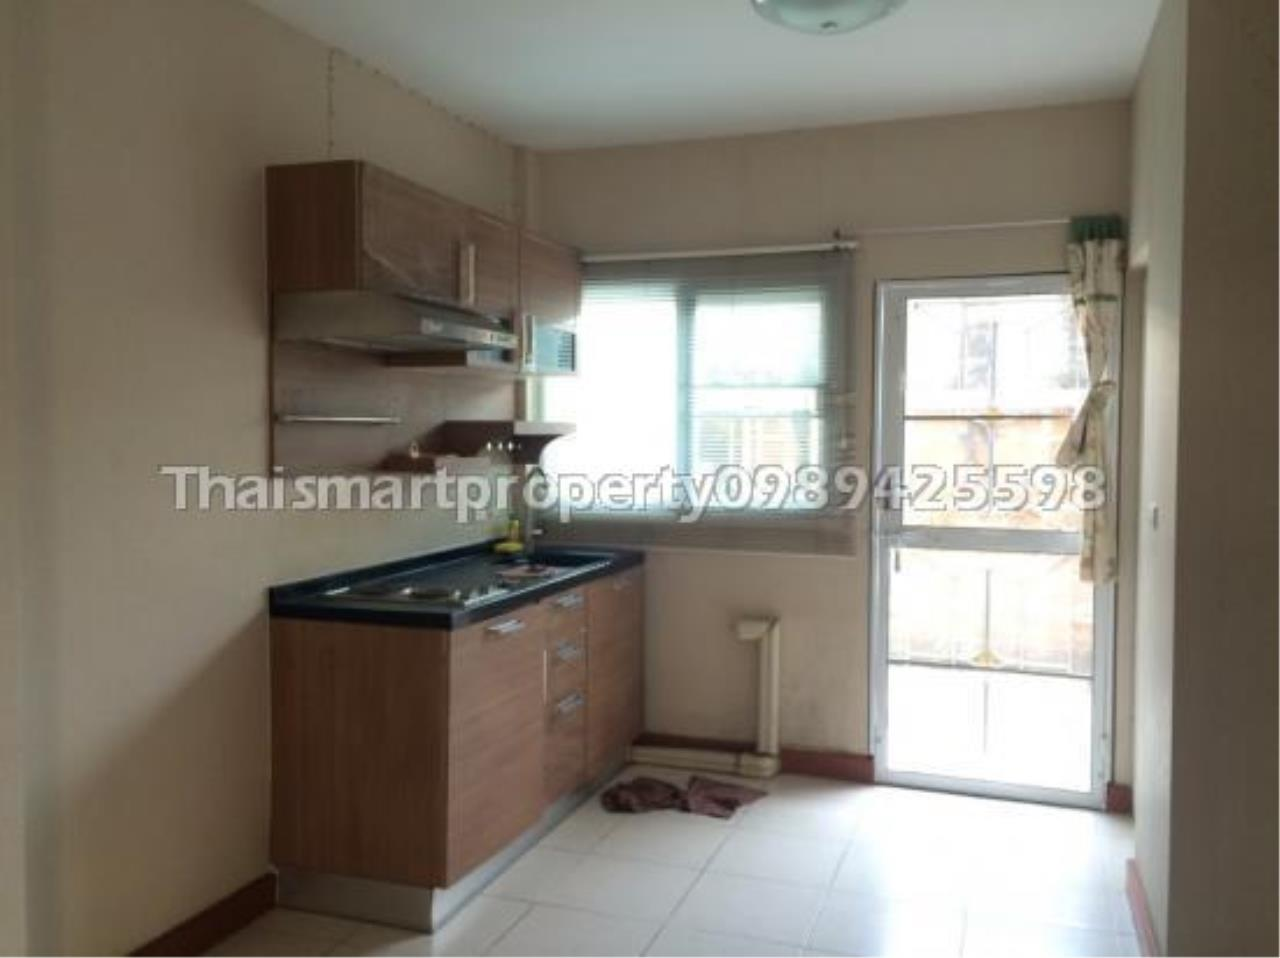 Thai Smart Property Agency's 3 storey townhome for sale, Casa City Sukontasawat 2 3